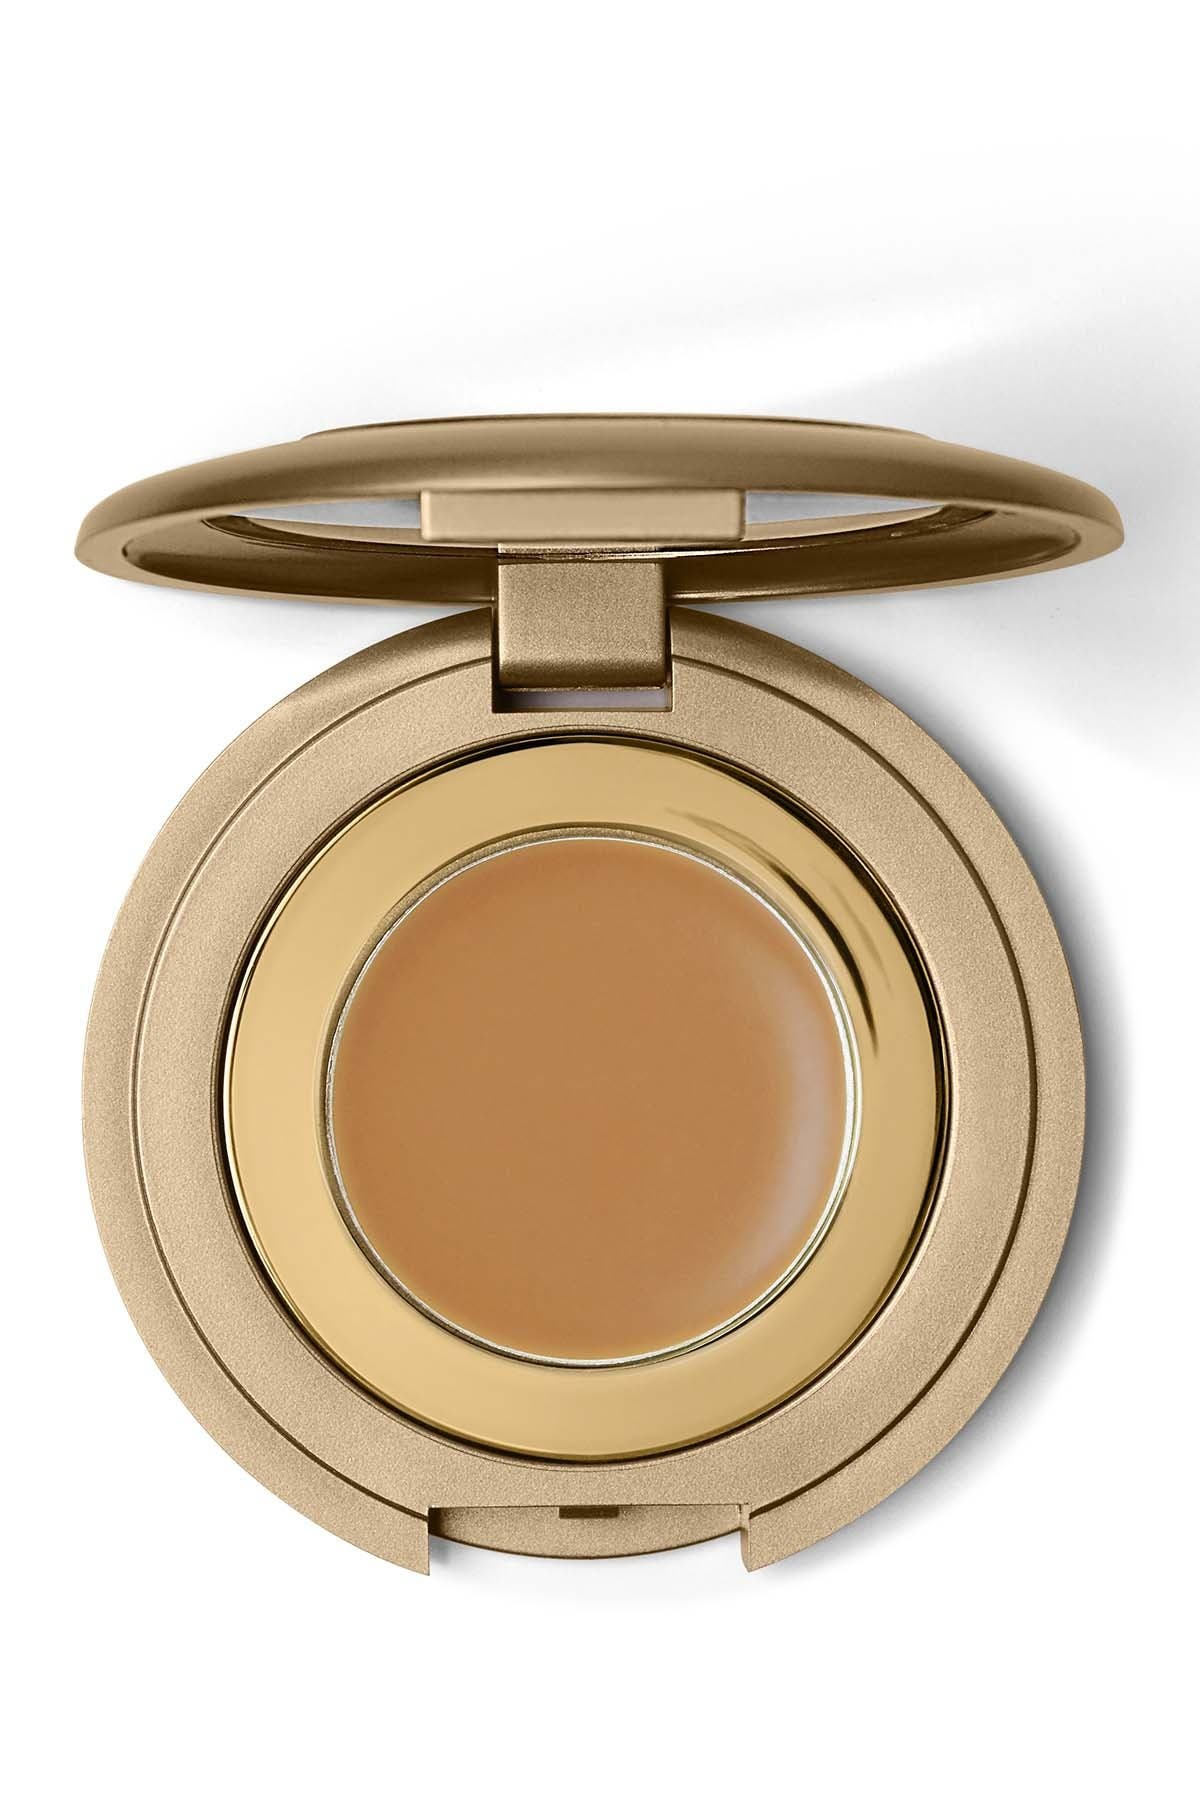 Image of Stila Stay All Day Concealer Refill - Hue 5